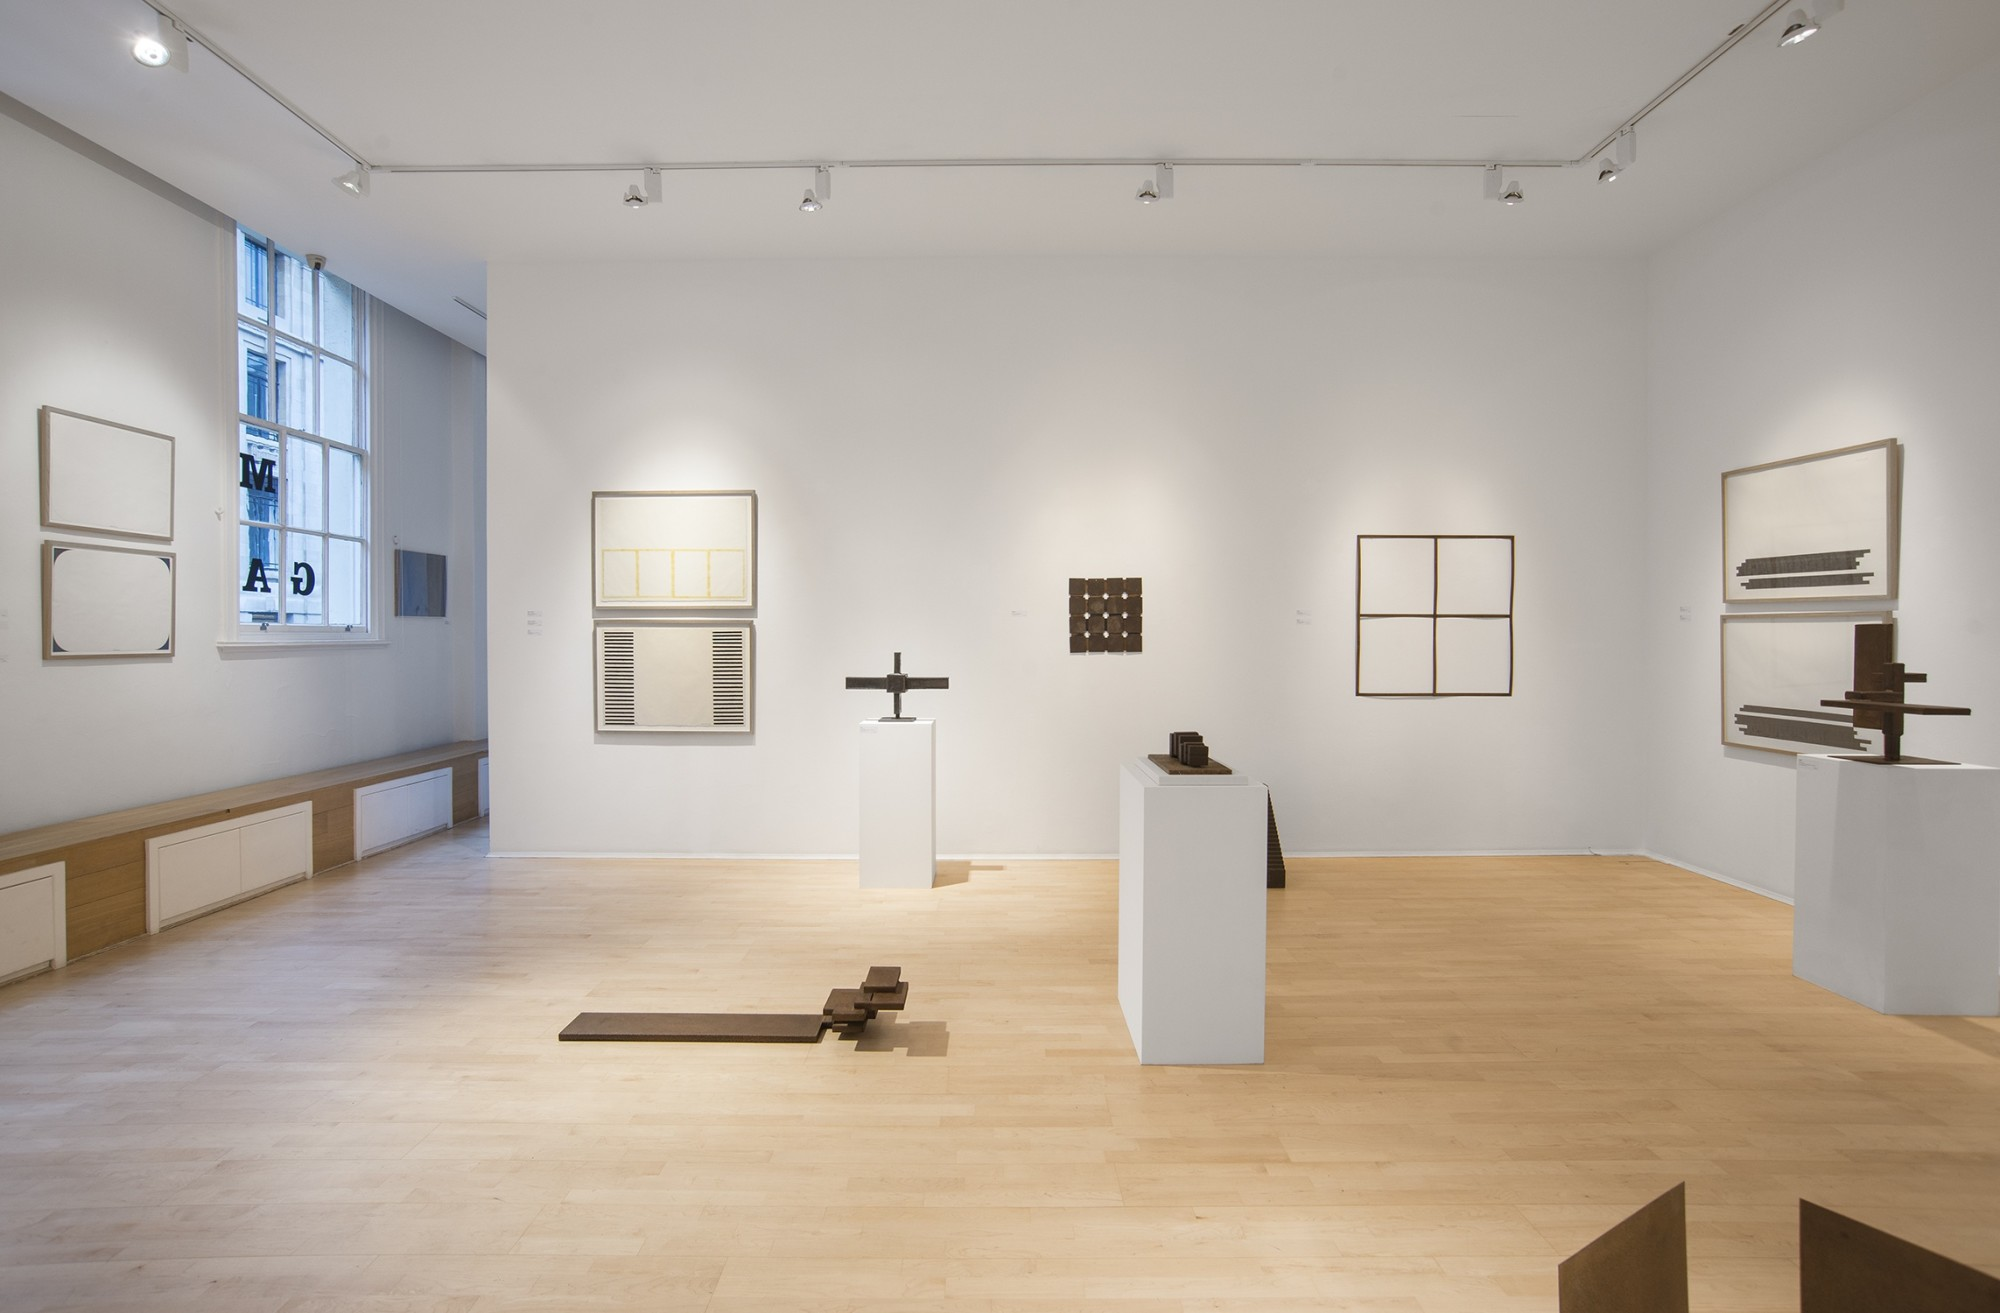 "<span class=""link fancybox-details-link""><a href=""/exhibitions/88/works/image_standalone1541/"">View Detail Page</a></span><p>CAREL VISSER 